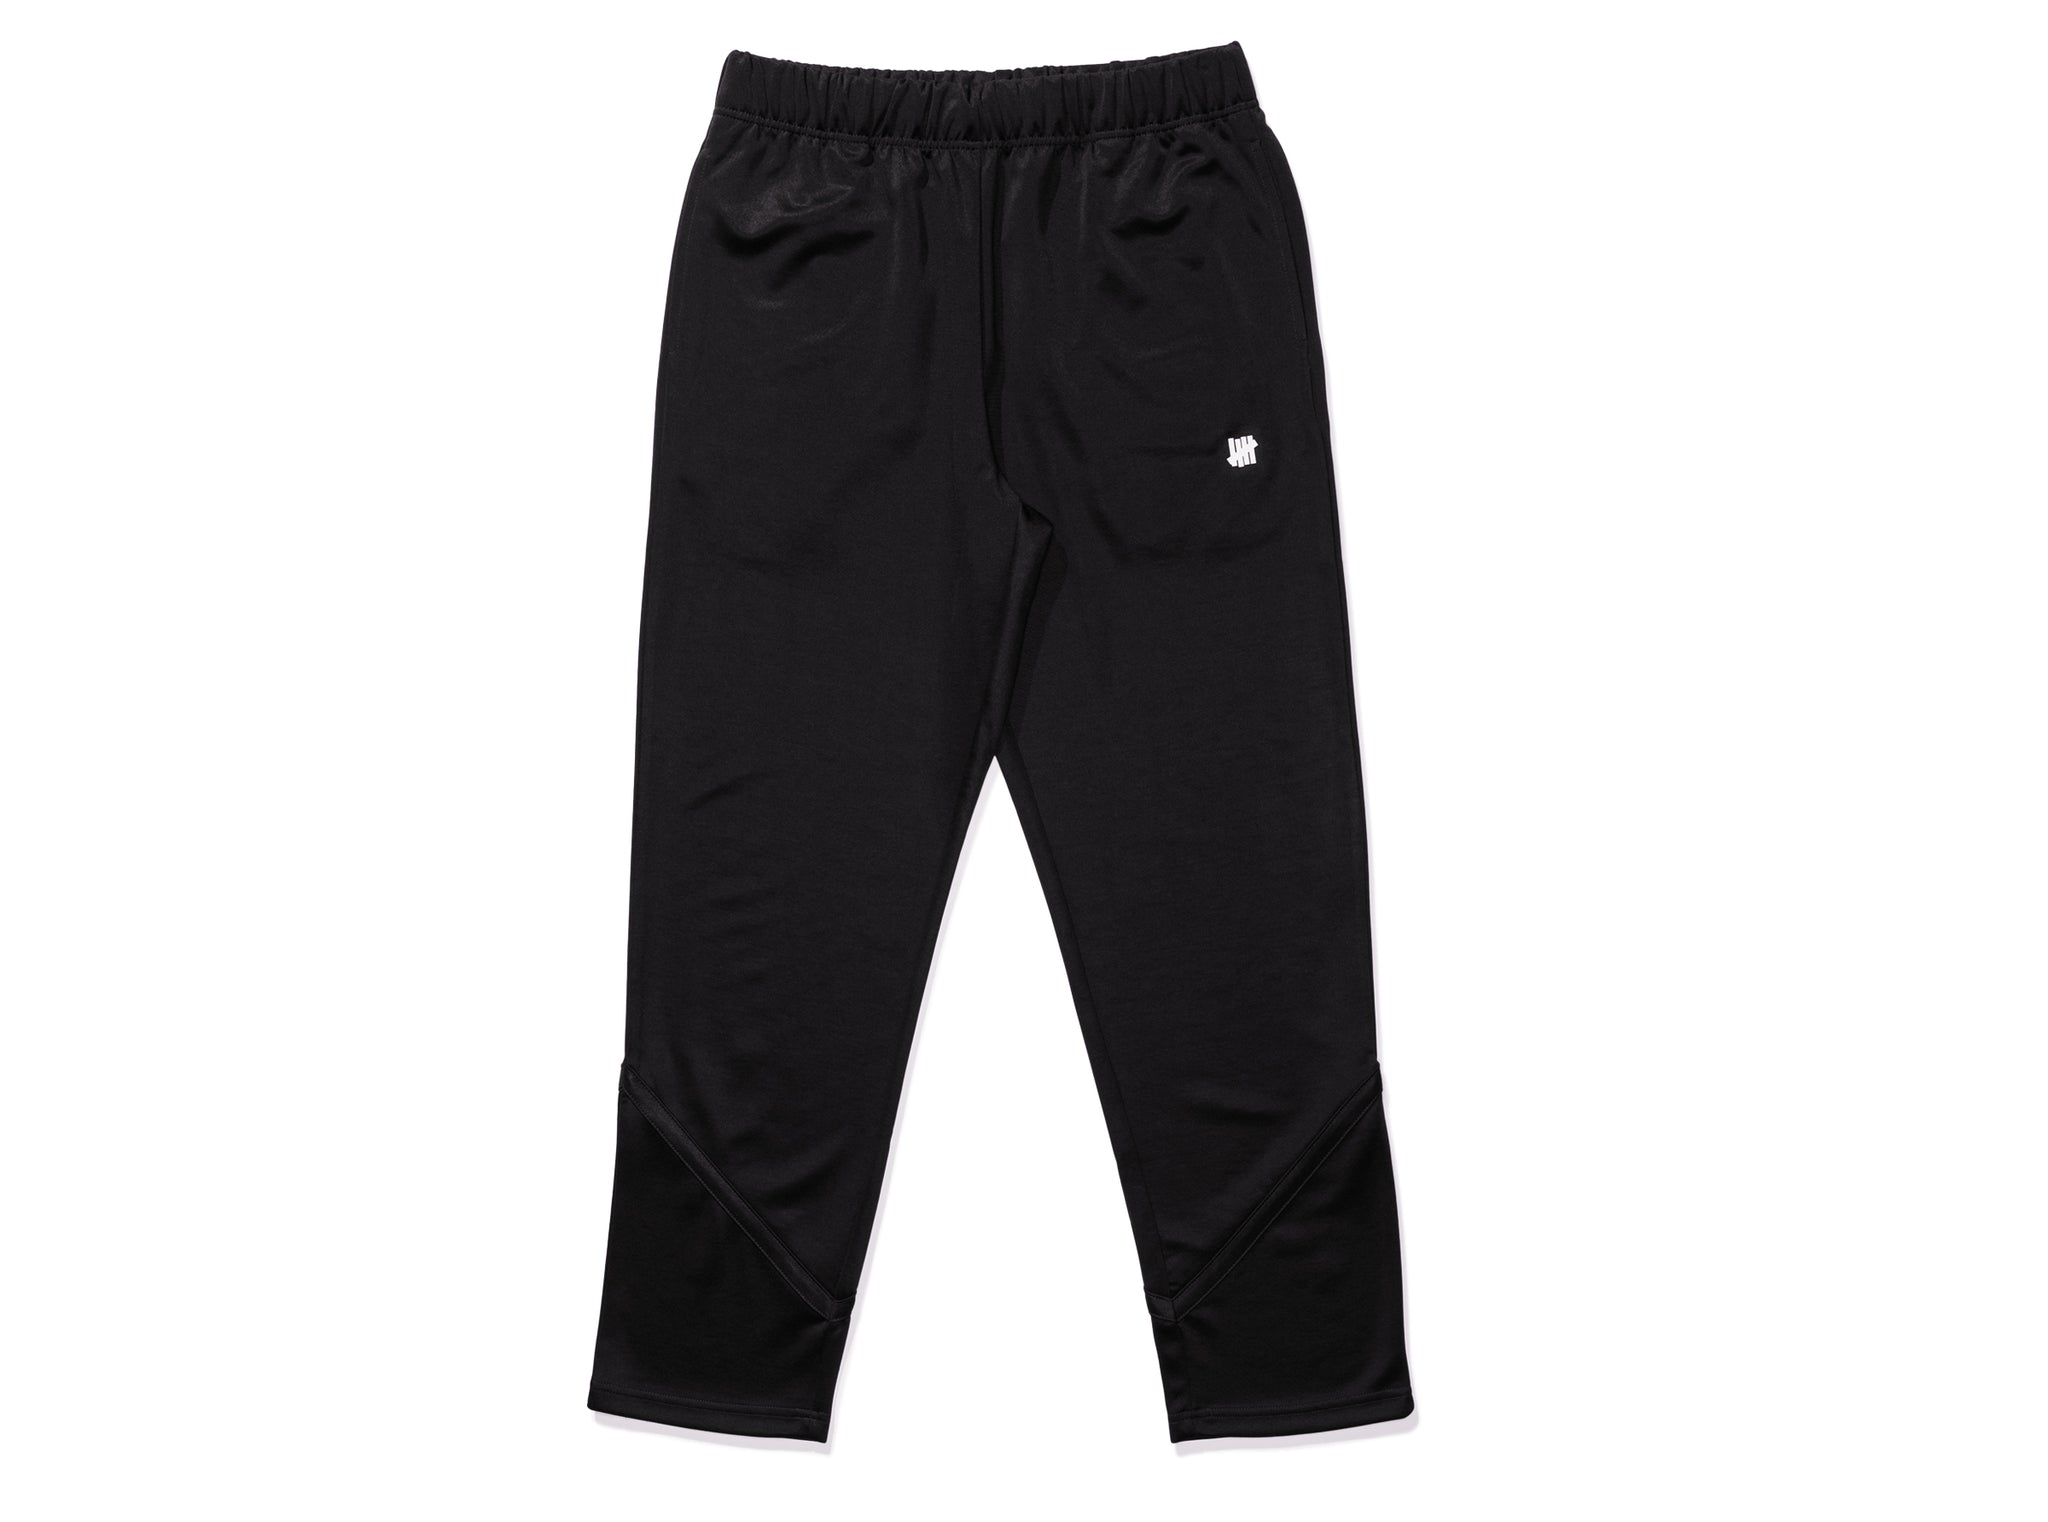 UNDEFEATED TAPED SEAM WARM-UP PANT